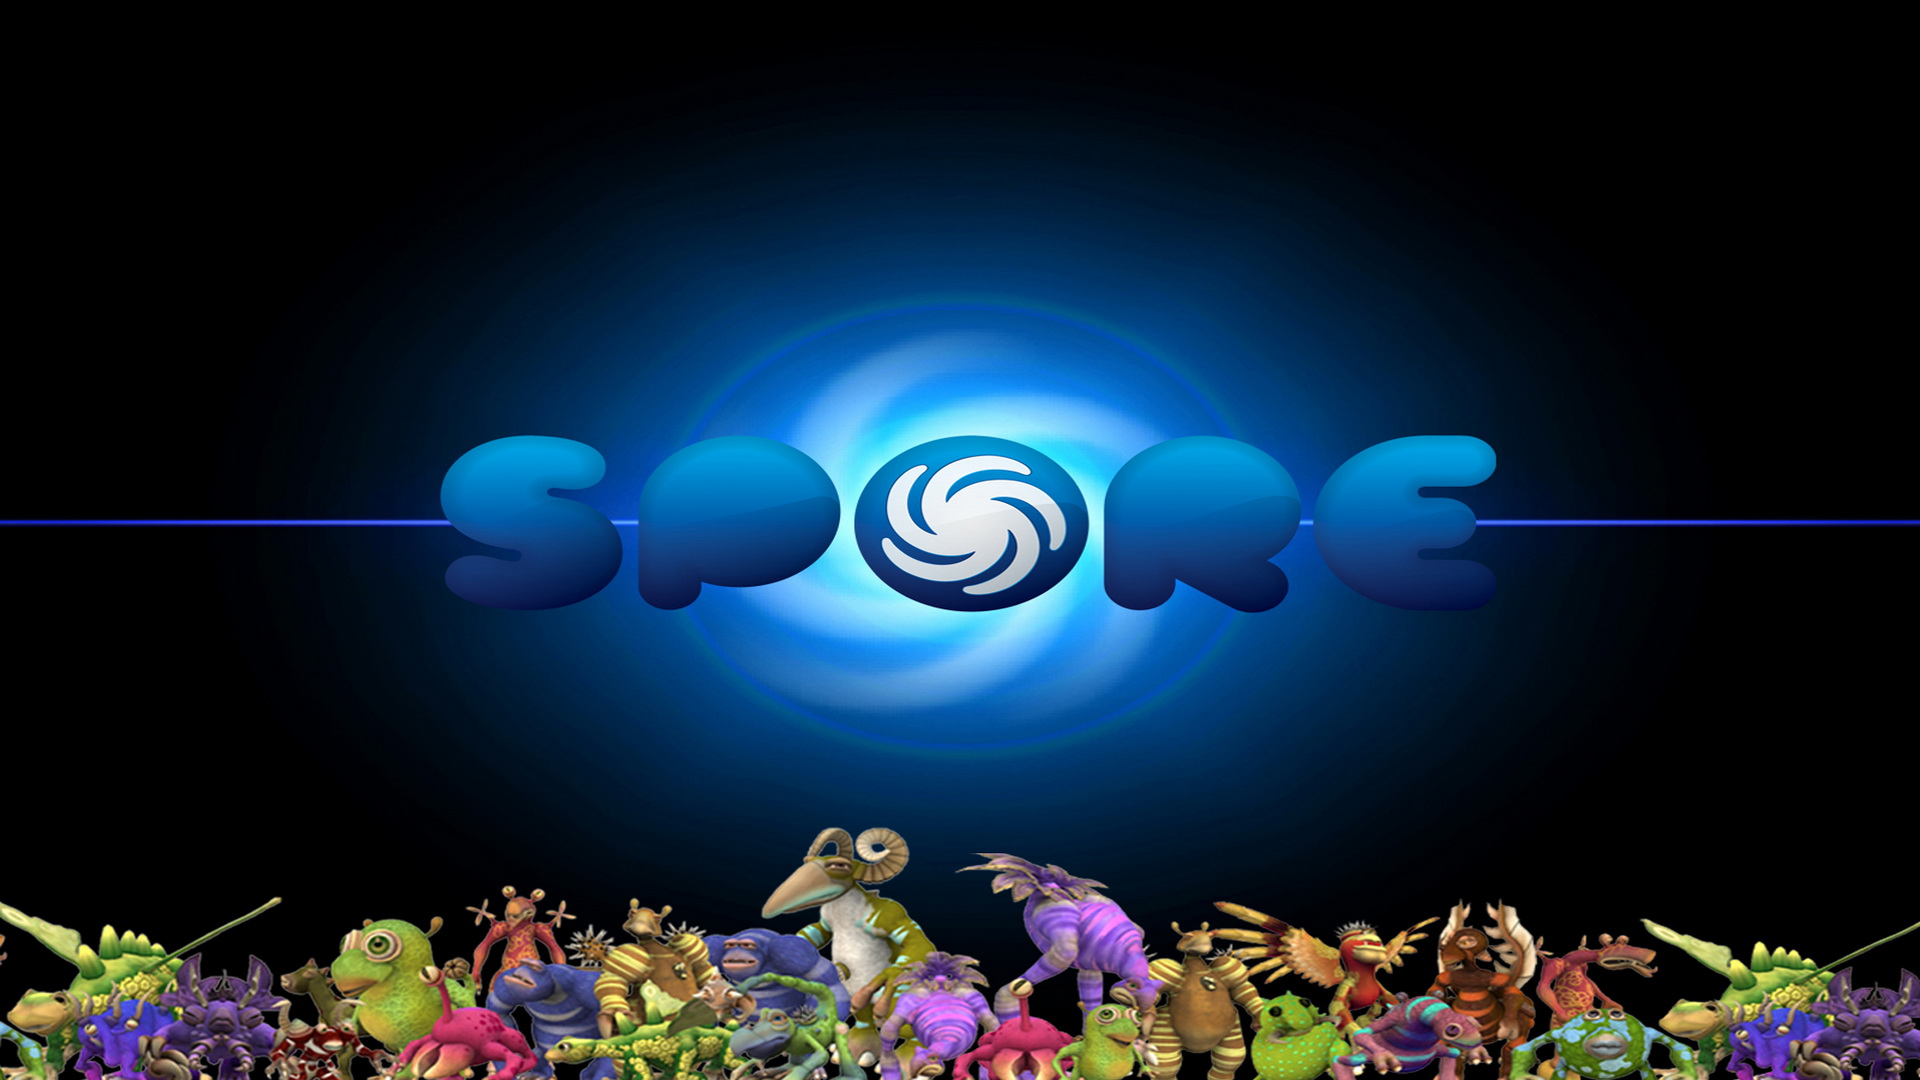 spore pc game HD Wallpapers Games Wallpaper Game HD 1920x1080